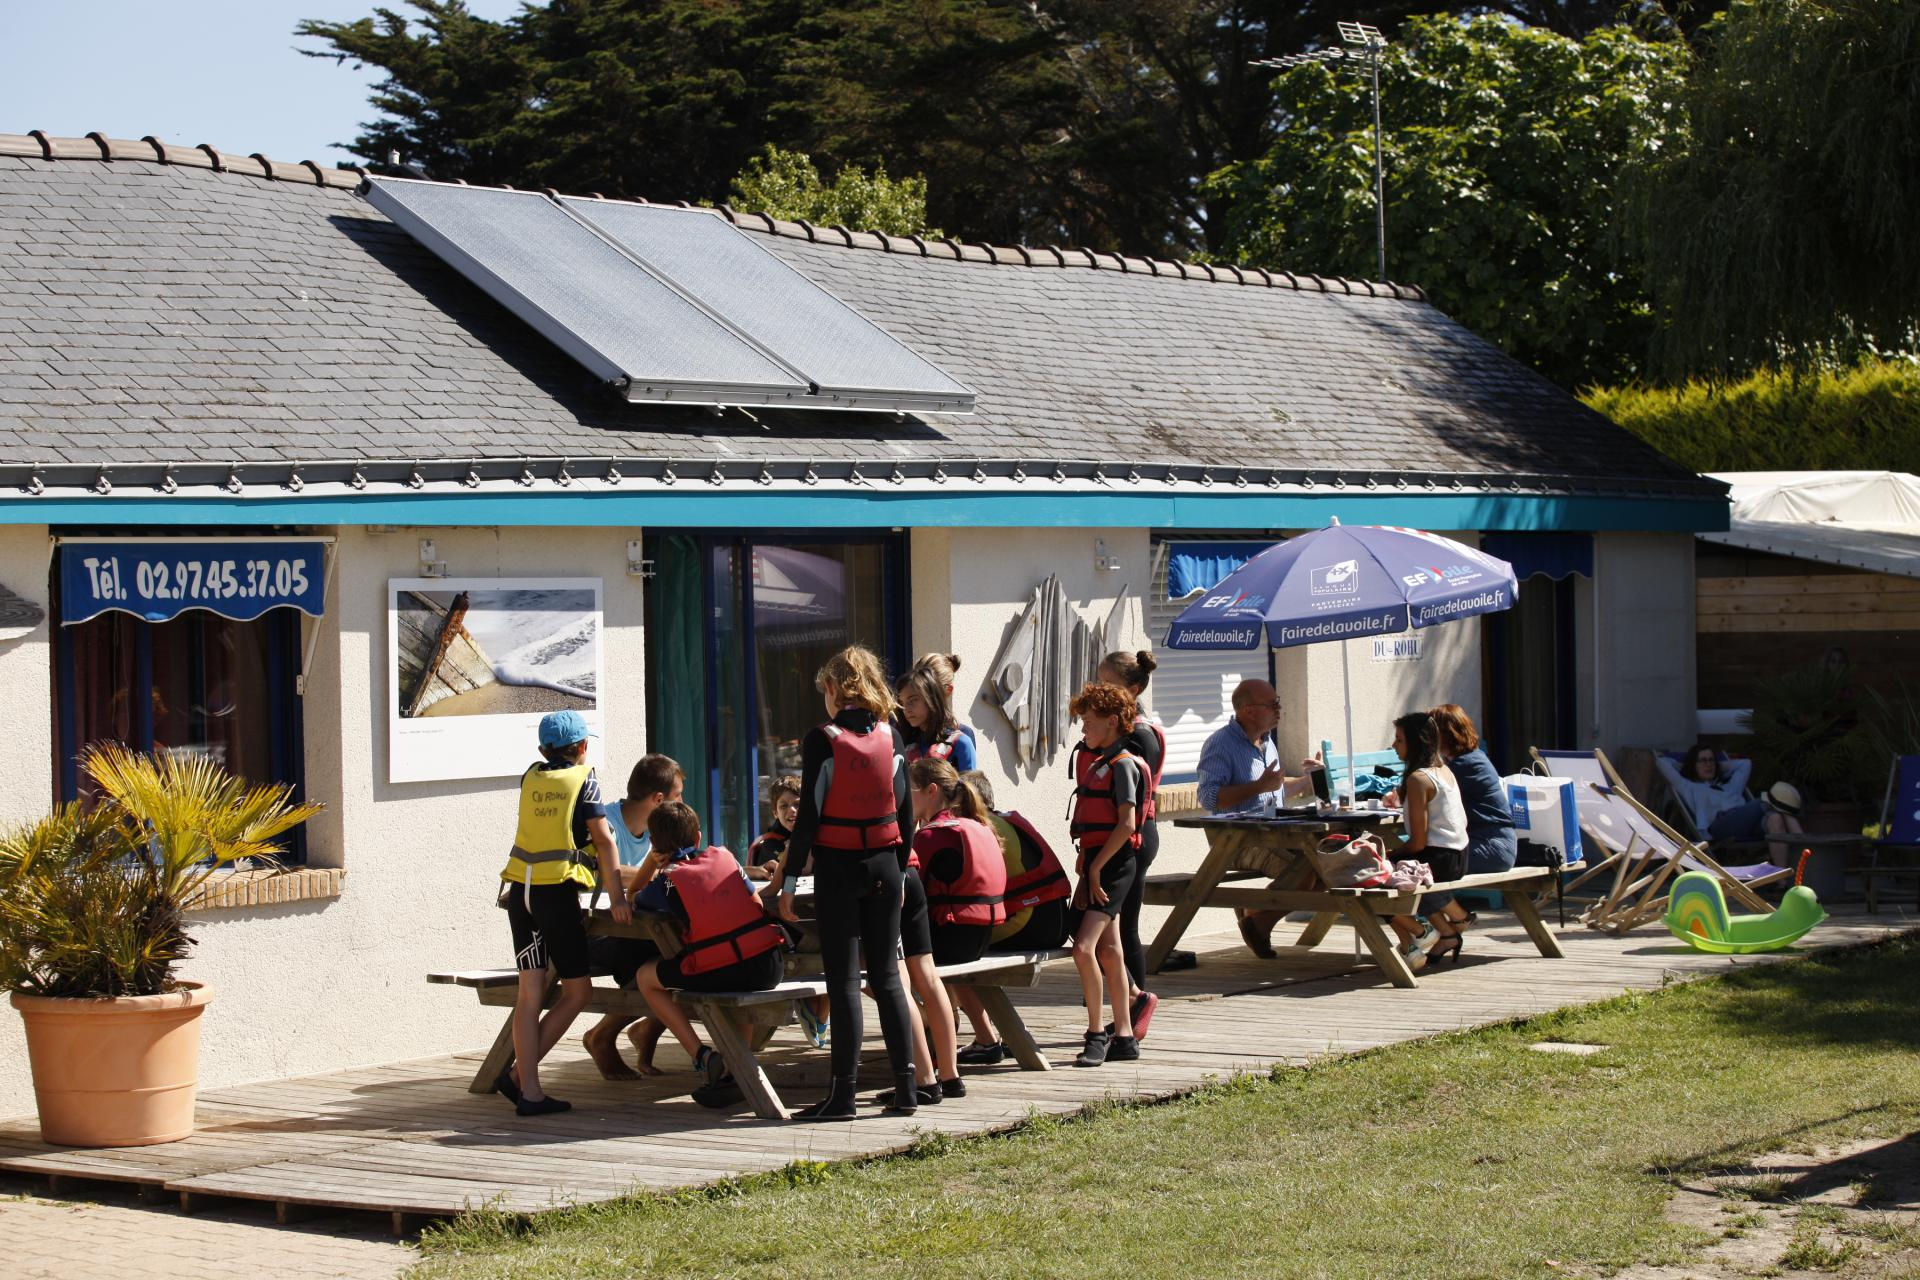 Club Nautique du Rohu Sailing School in Brittany (Morbihan)